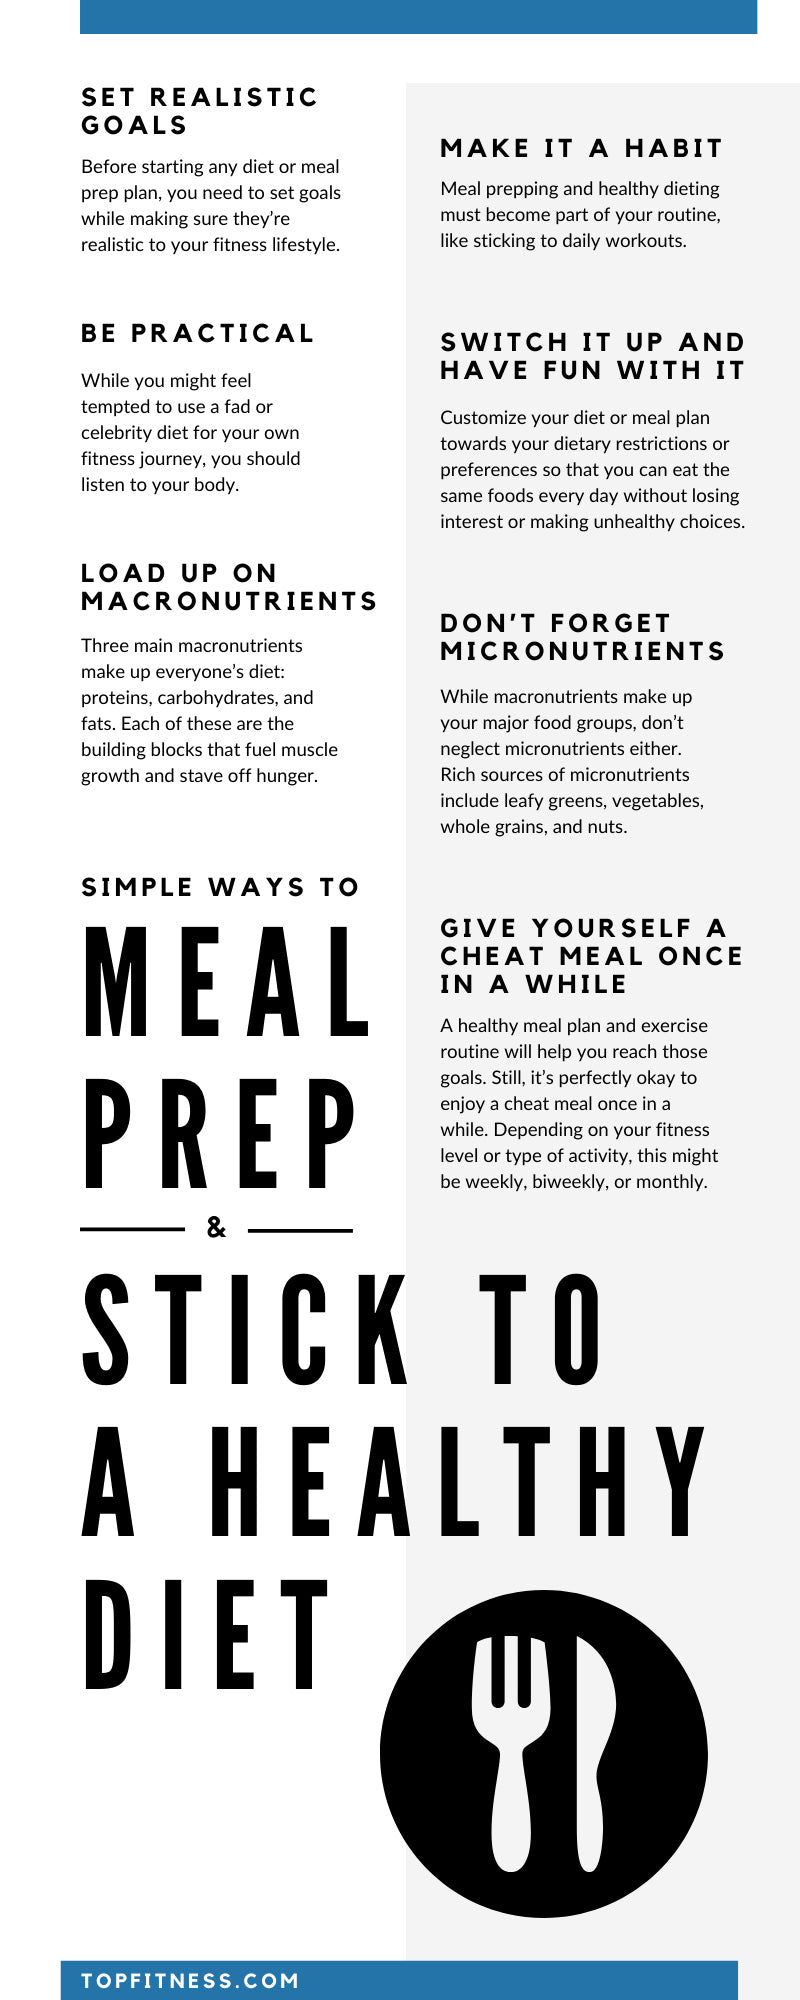 Simple Ways to Meal Prep & Stick to a Healthy Diet